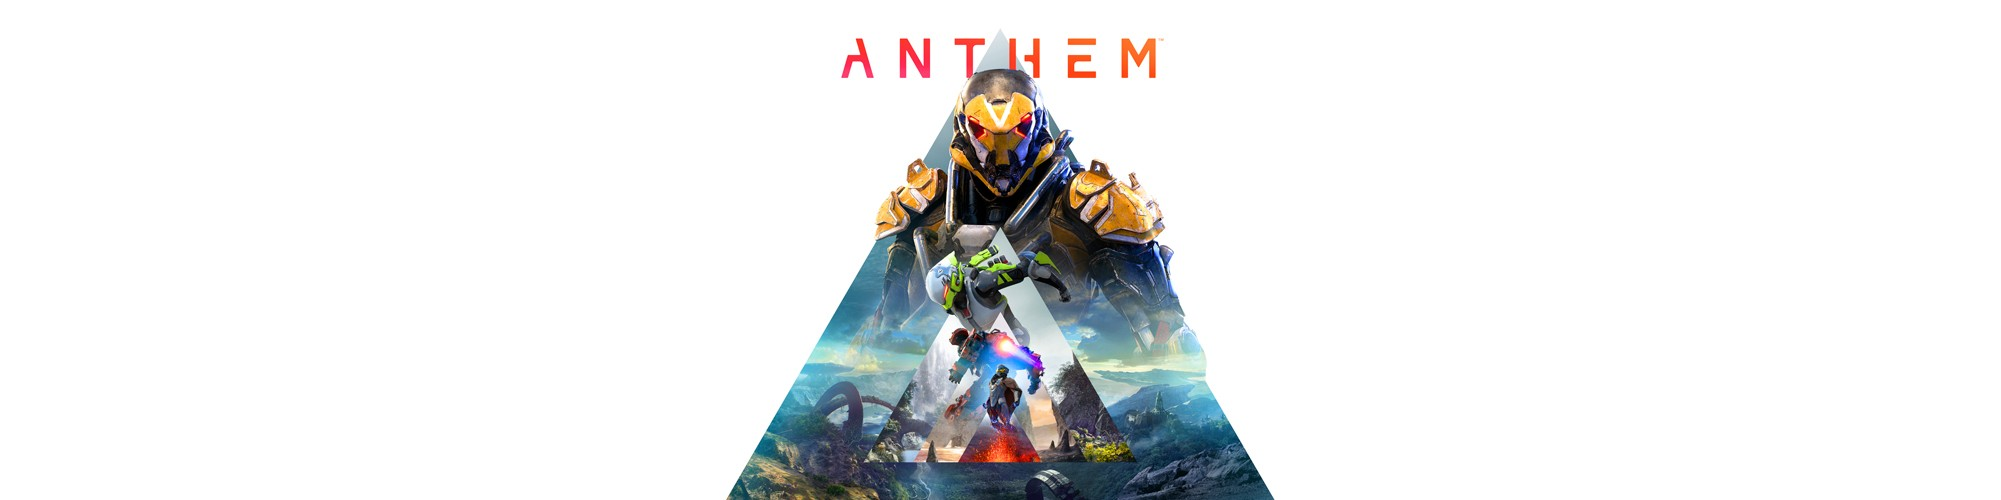 Anthem technical specifications for PC